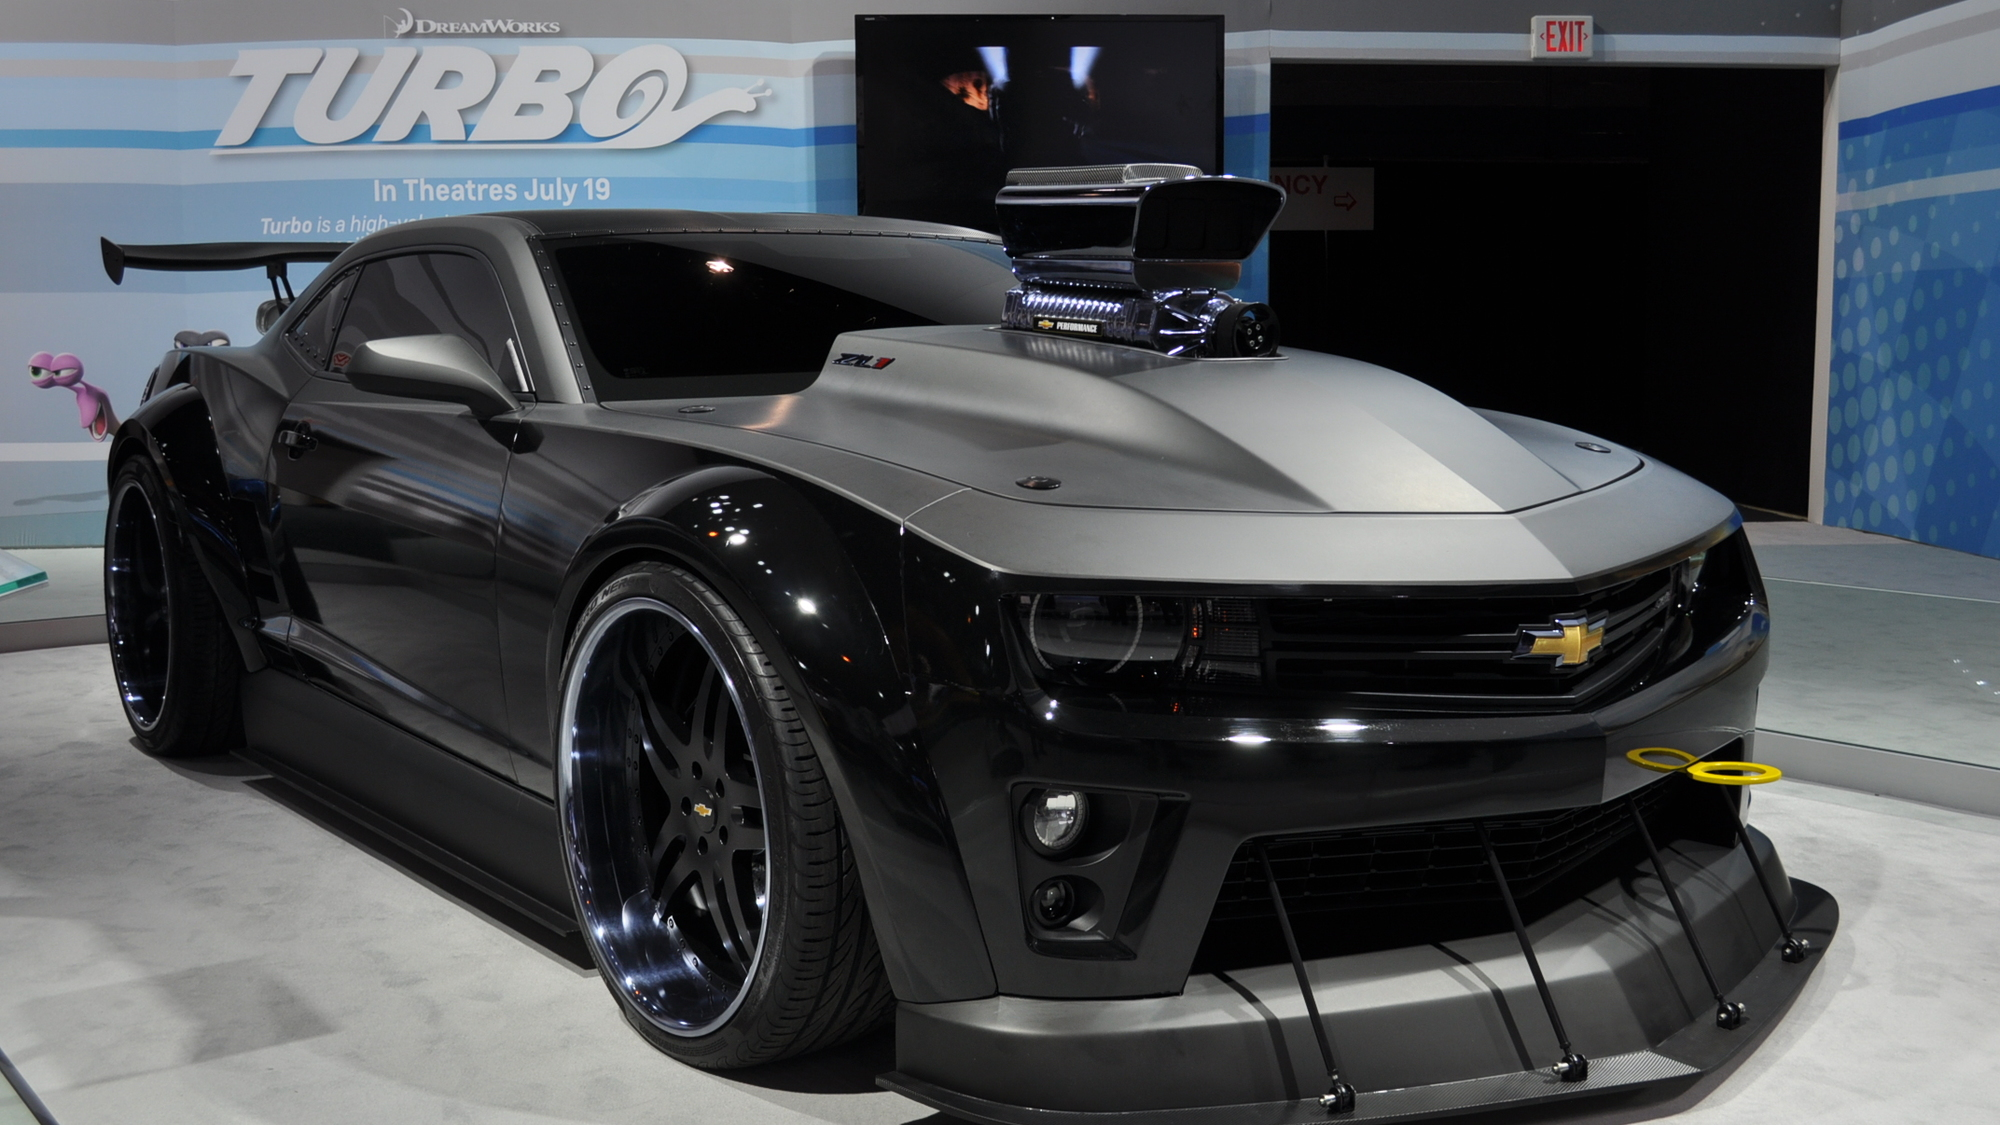 Chevrolet Camaro 'Turbo' Concept Live Photos